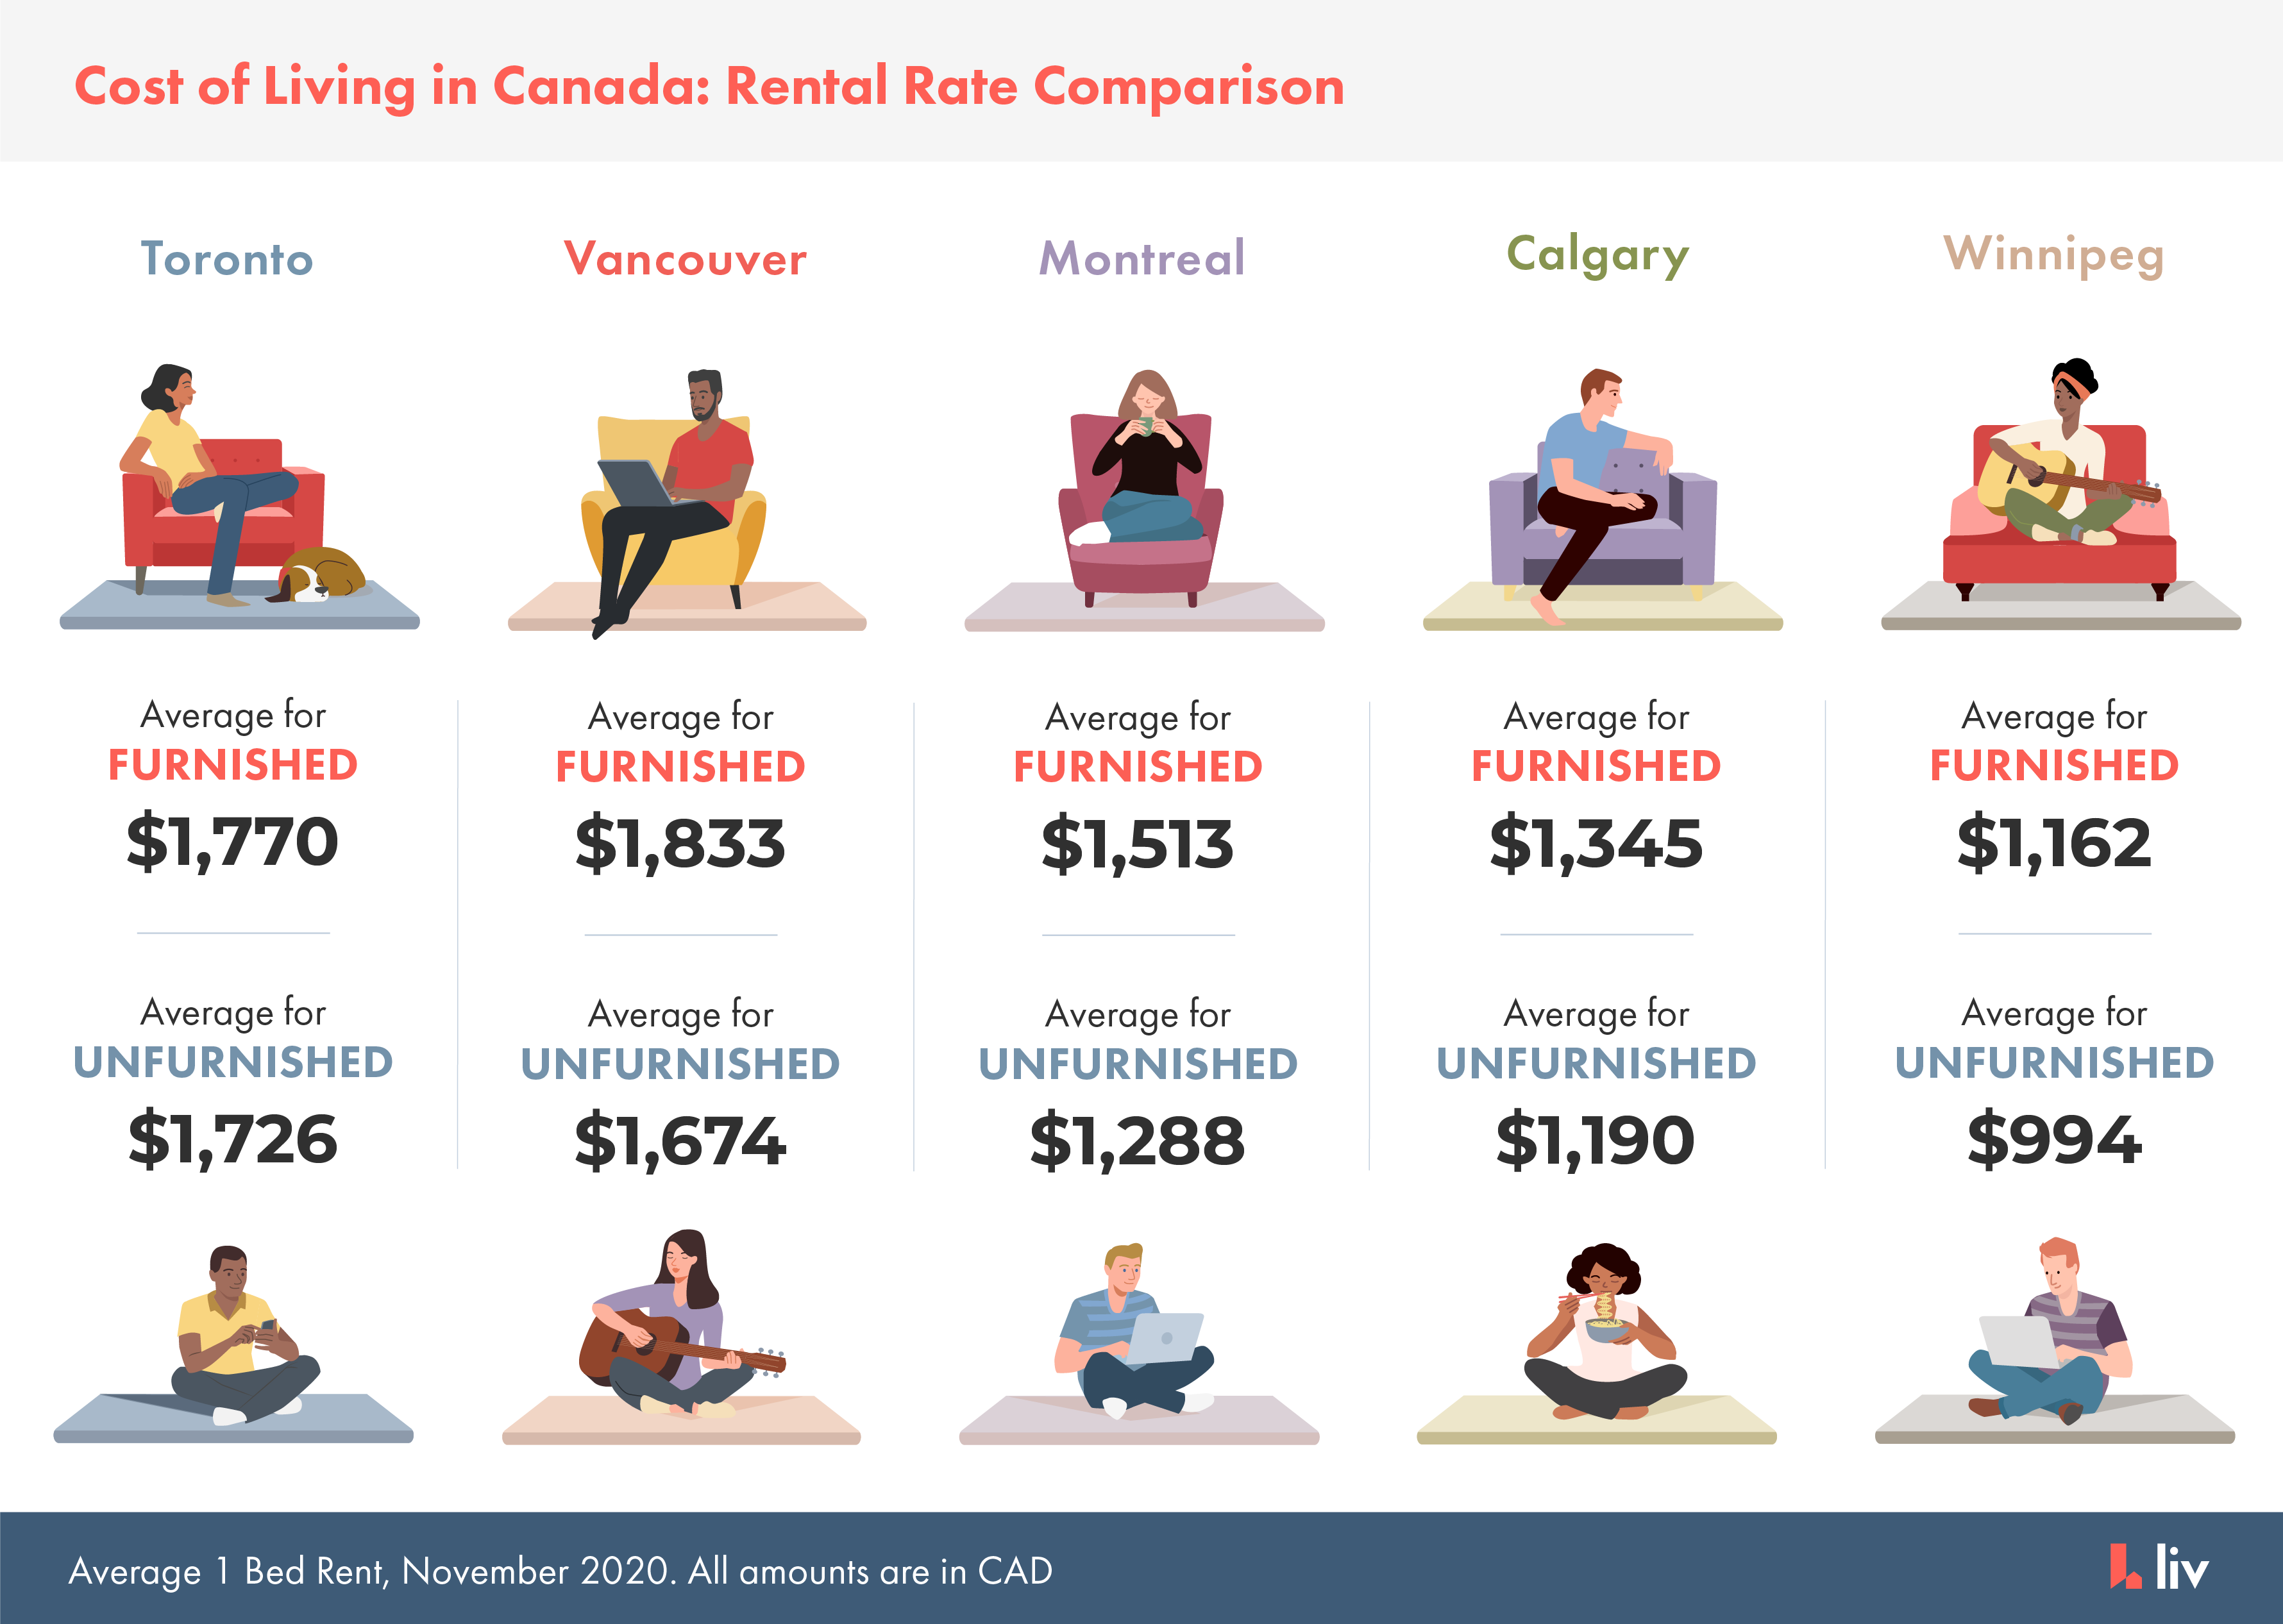 average rent in Canada - average rent in toronto, vancouver, montreal, calgary and winnipeg